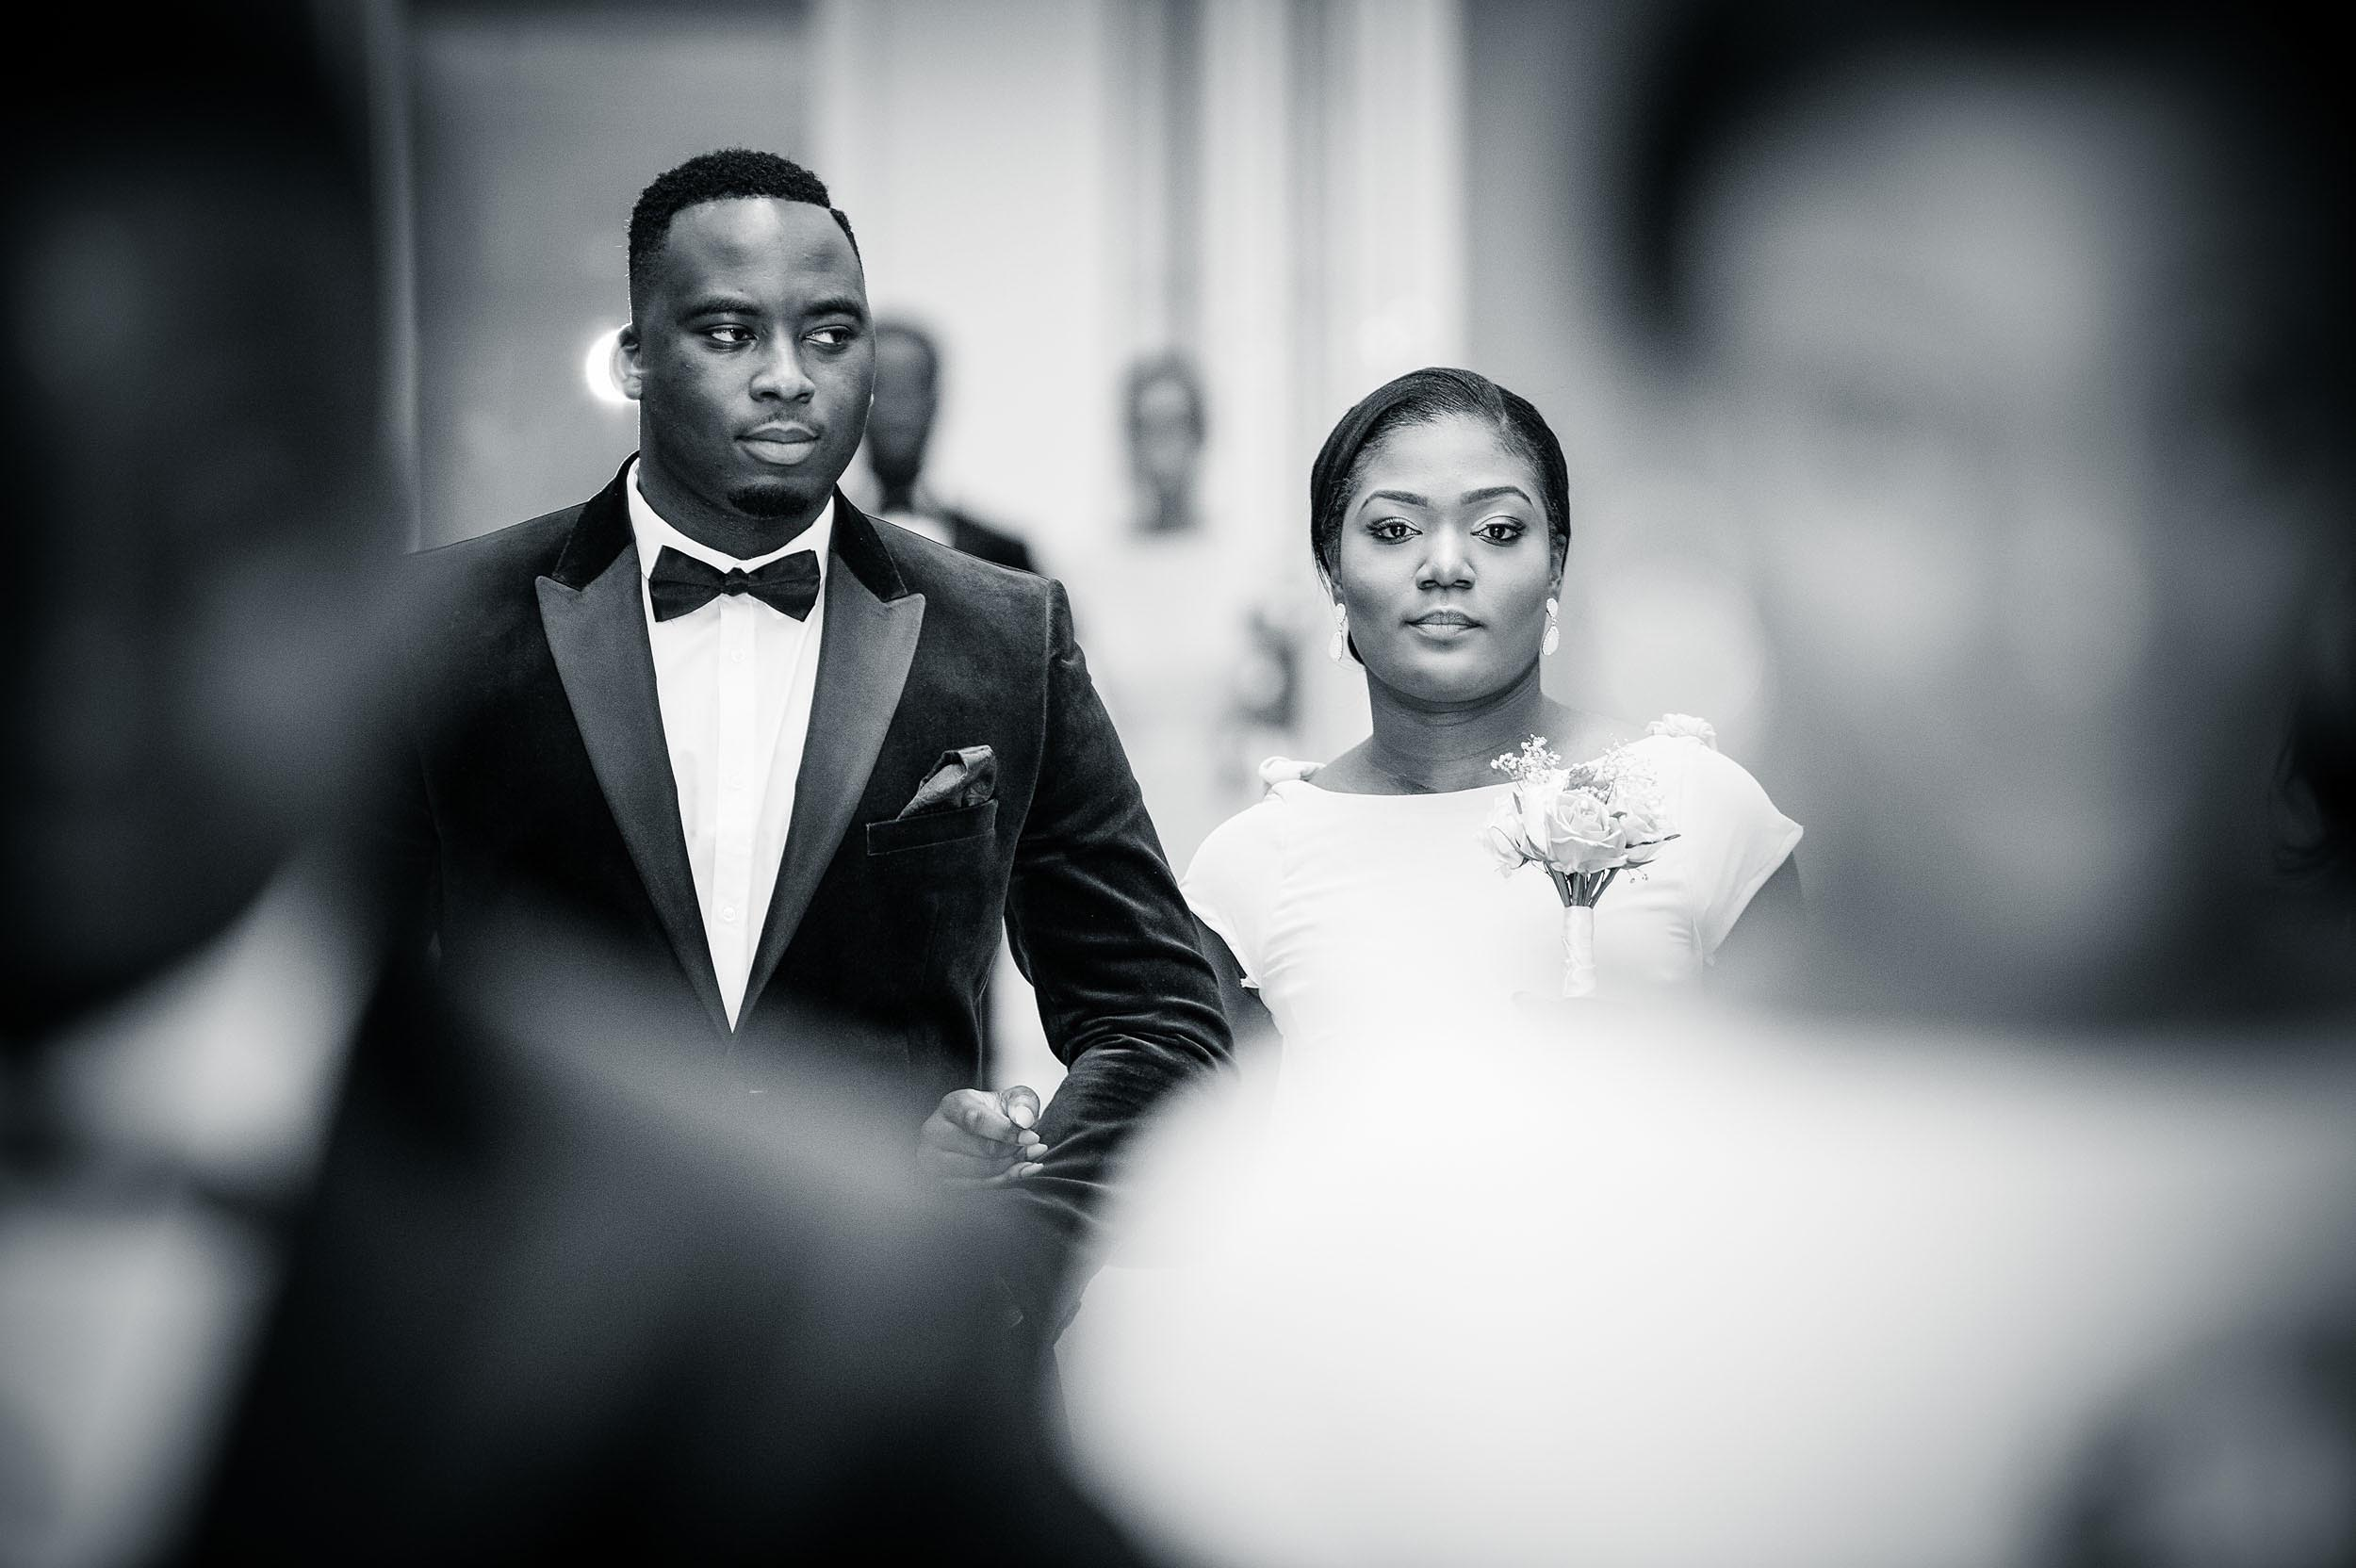 uckg-church-aisle-wedding-ceremony-monochrome-photography-london